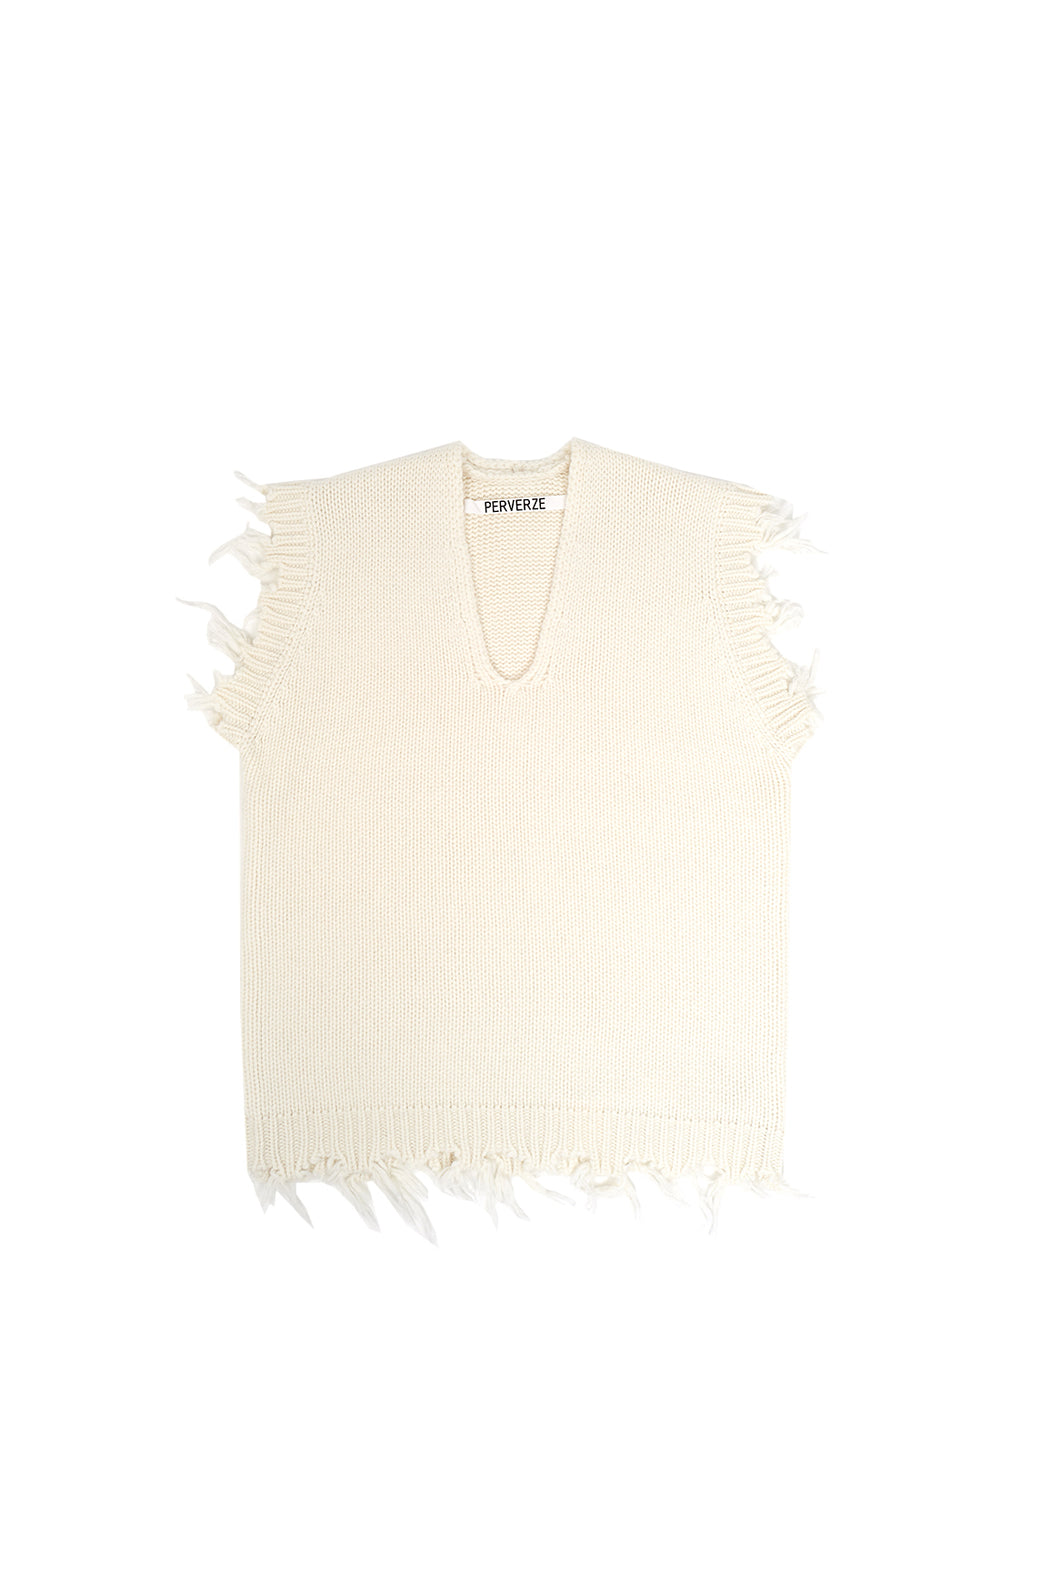 Crash Boxy Knit Vest - White